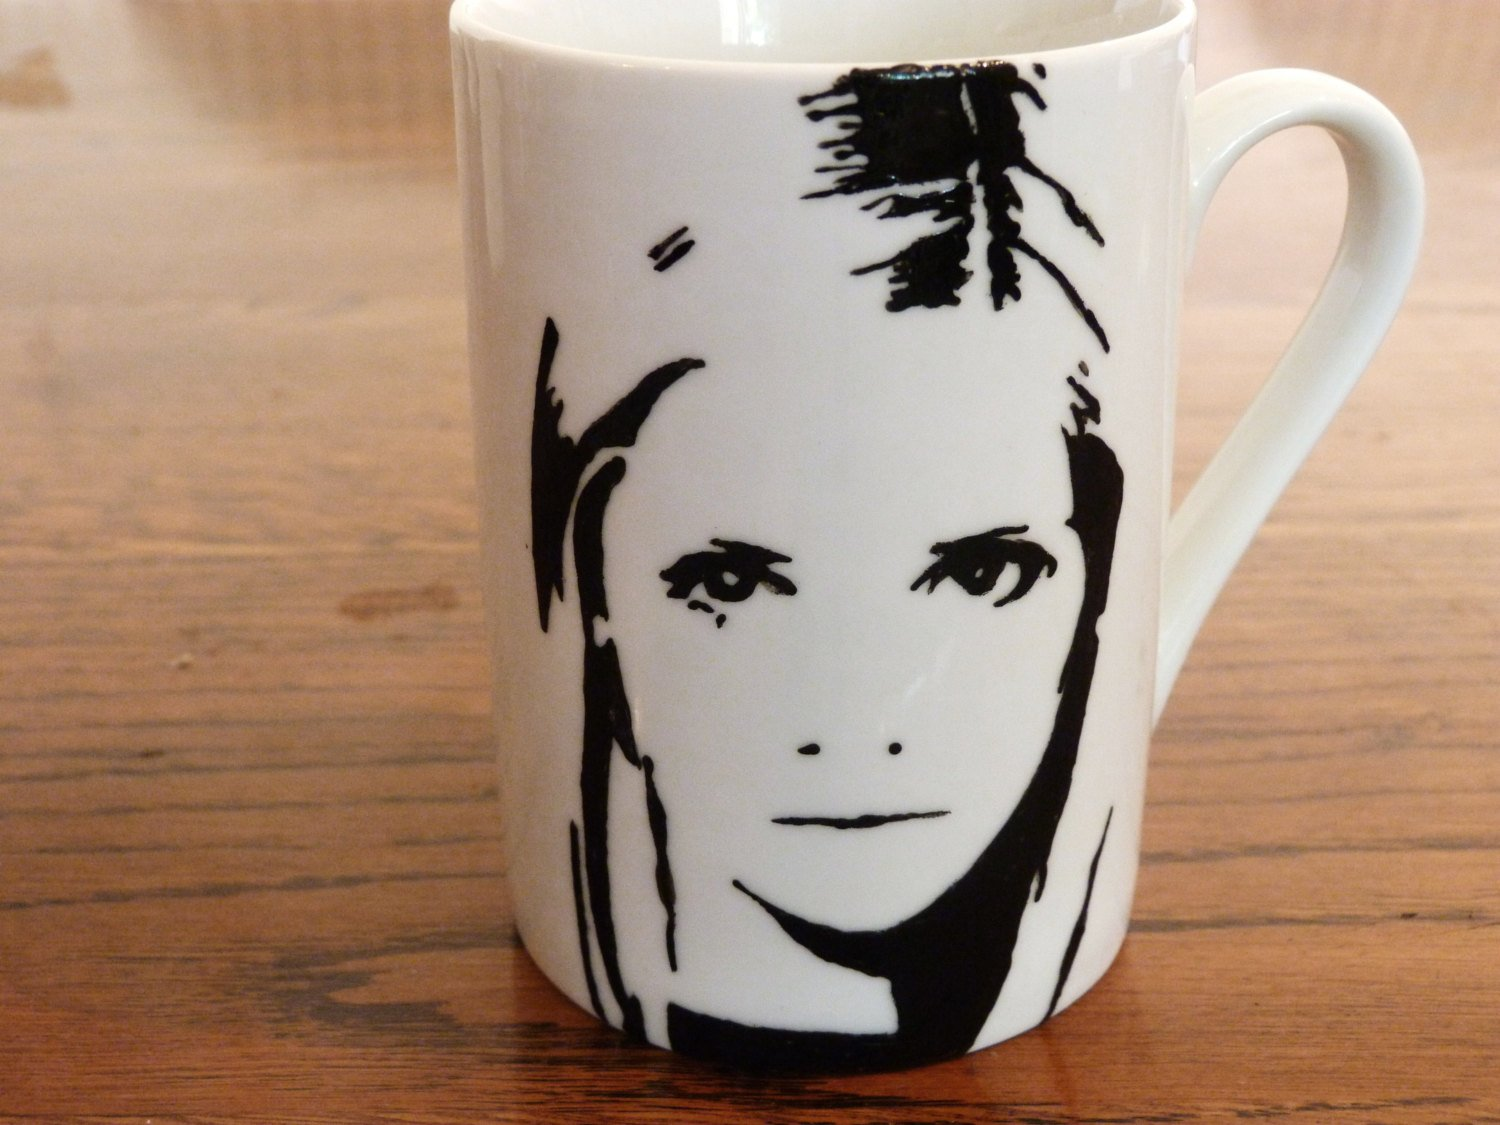 Sarah Michelle Gellar, James Masters, David Boreanaz, Buffy, Spike, Angel, Hand painted, Hand PrintedBuffy the Vampire Slayer cup set